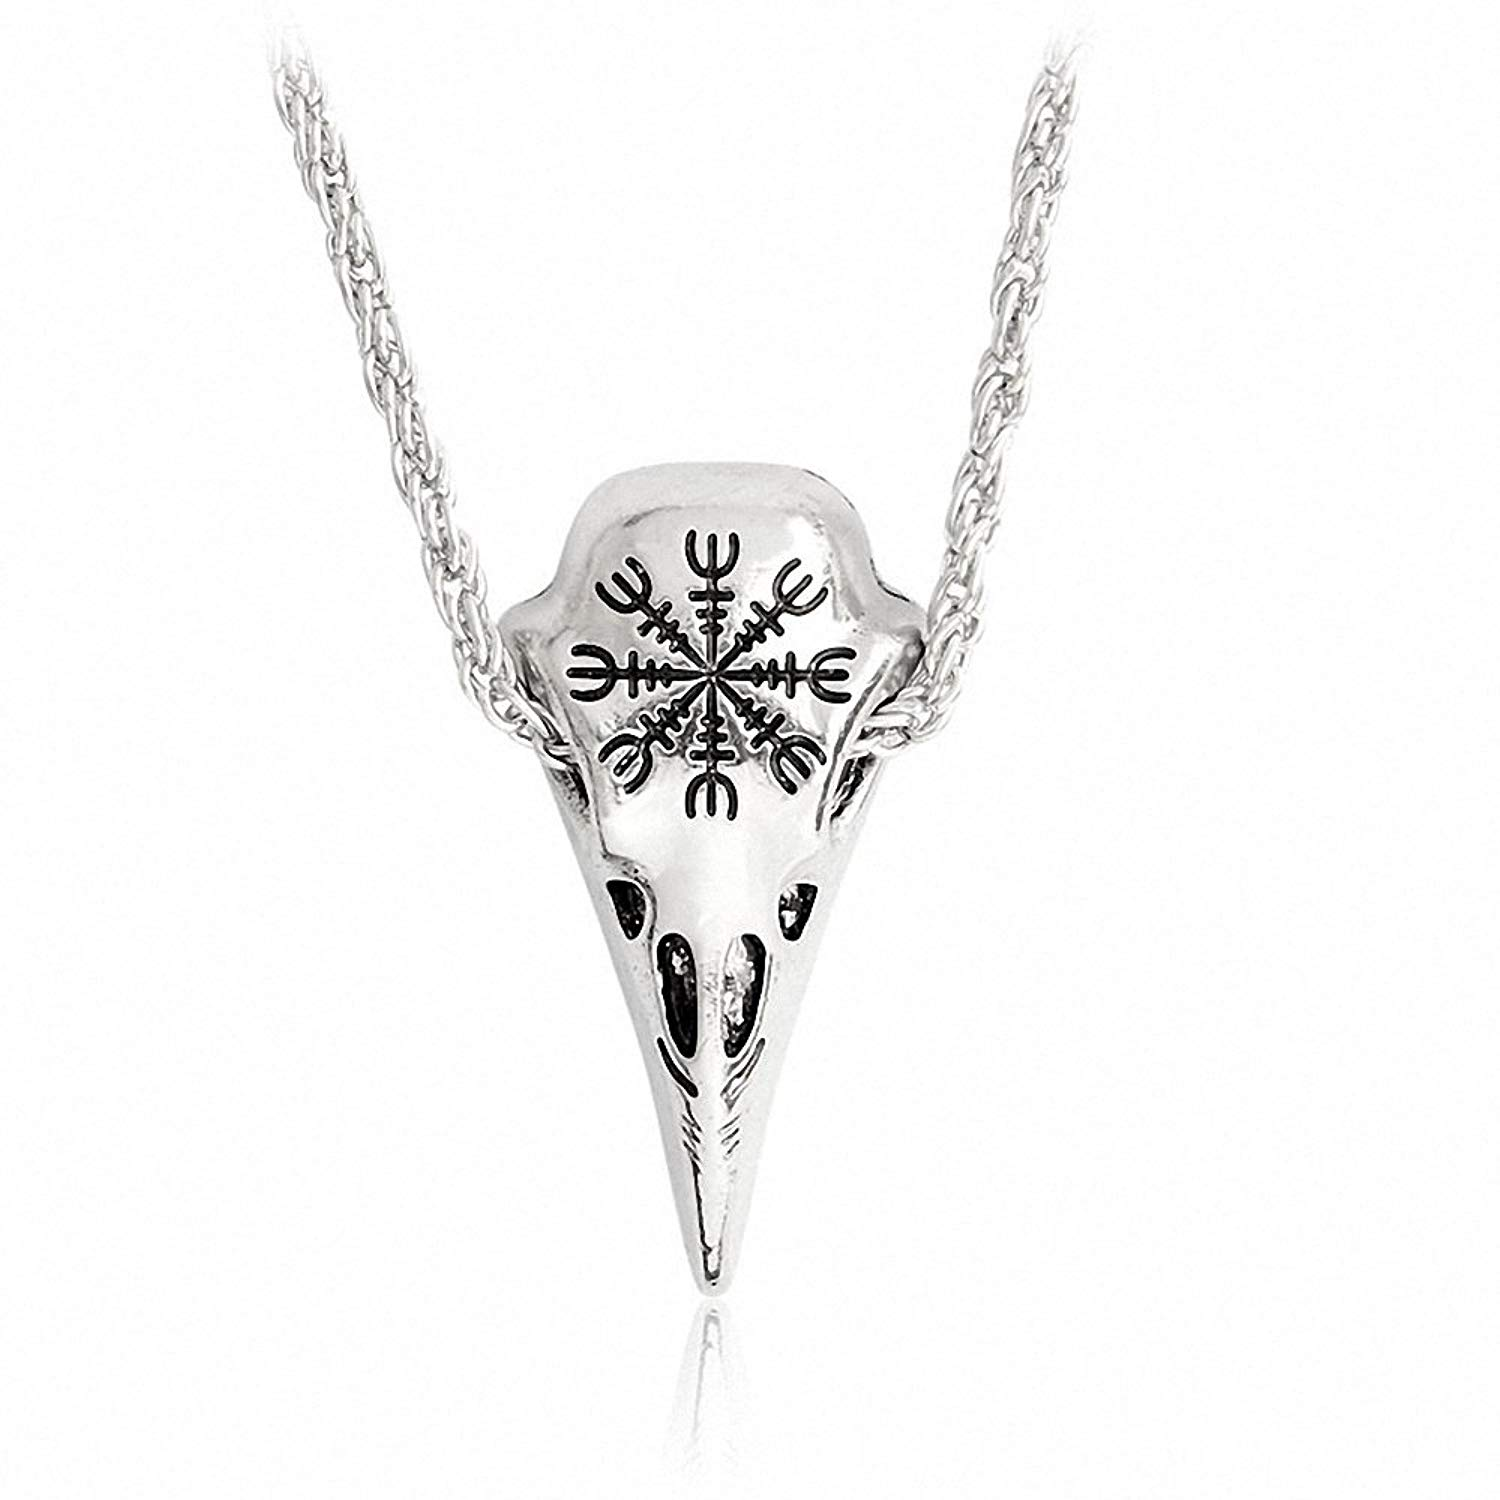 Lisadream Men's Necklace Viking Jewelry Norse Amulet Helm Of Awe Raven Skull Pendant with Chain/Leather Necklace for Men